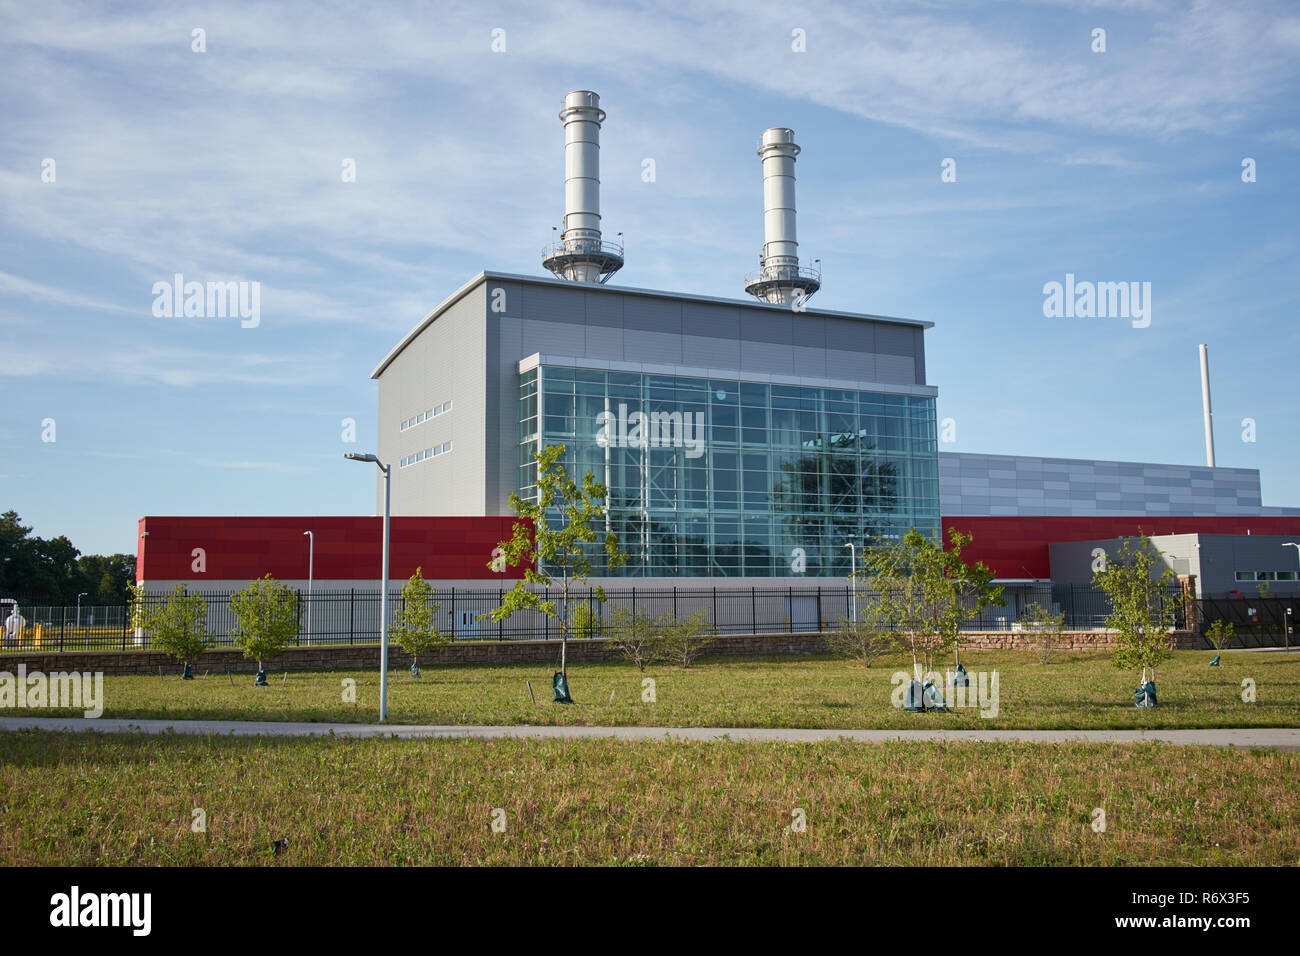 Gas-fired power plant built in 2017 in Holland, Michigan - Stock Image